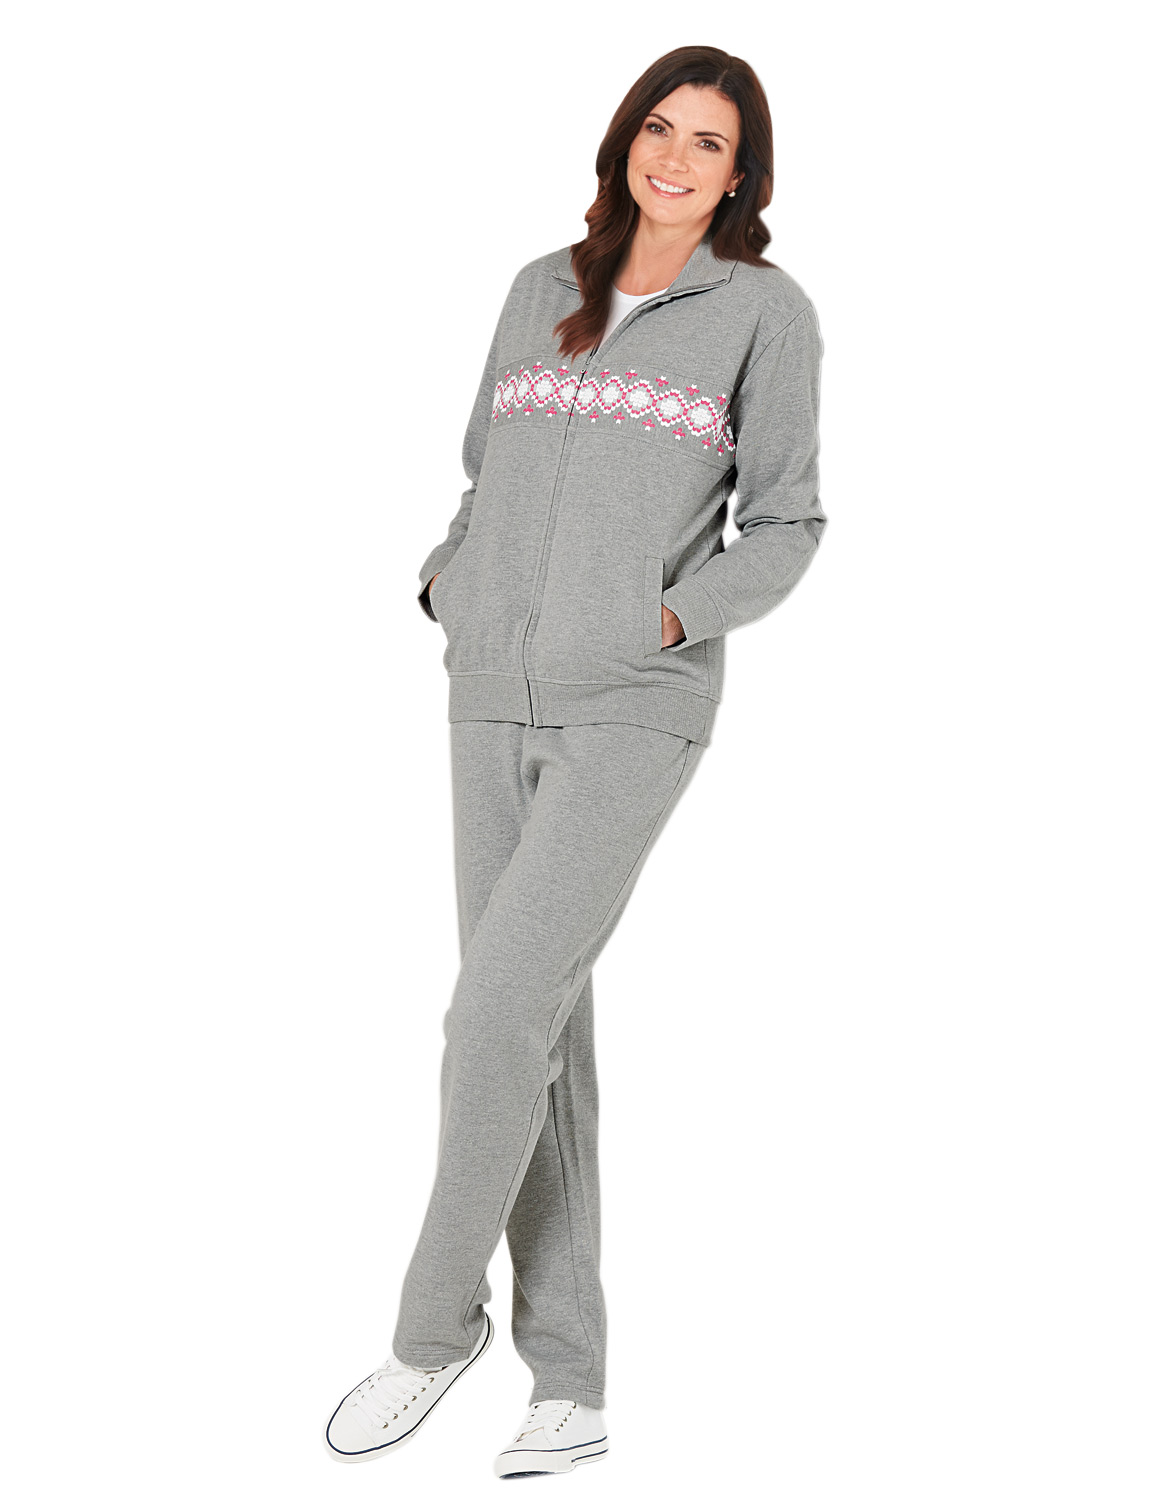 Find great deals on eBay for ladies tracksuits. Shop with confidence.